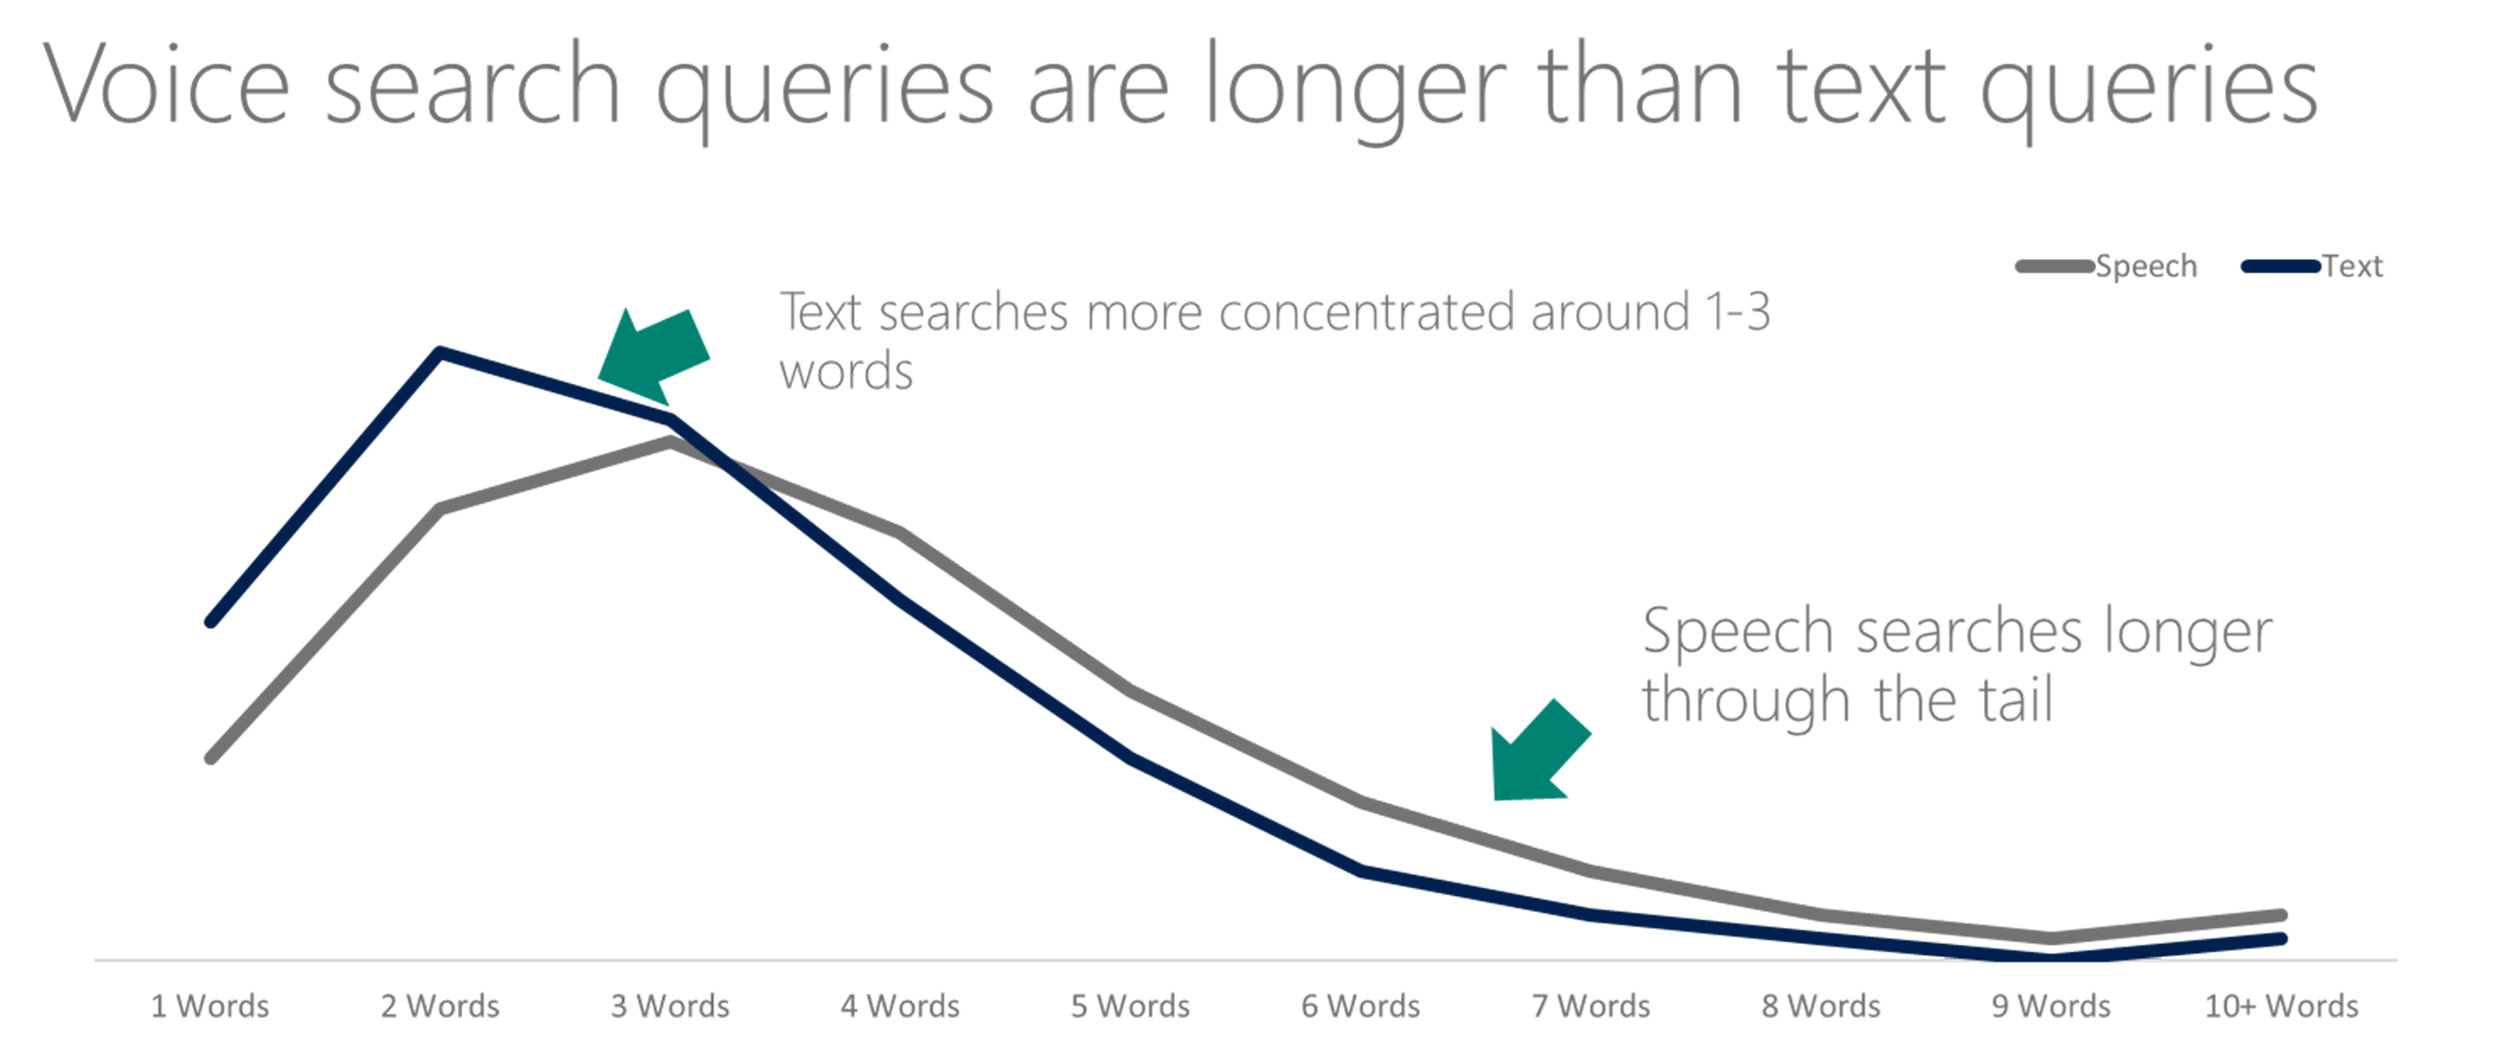 Voice Search queries are longer than text queries